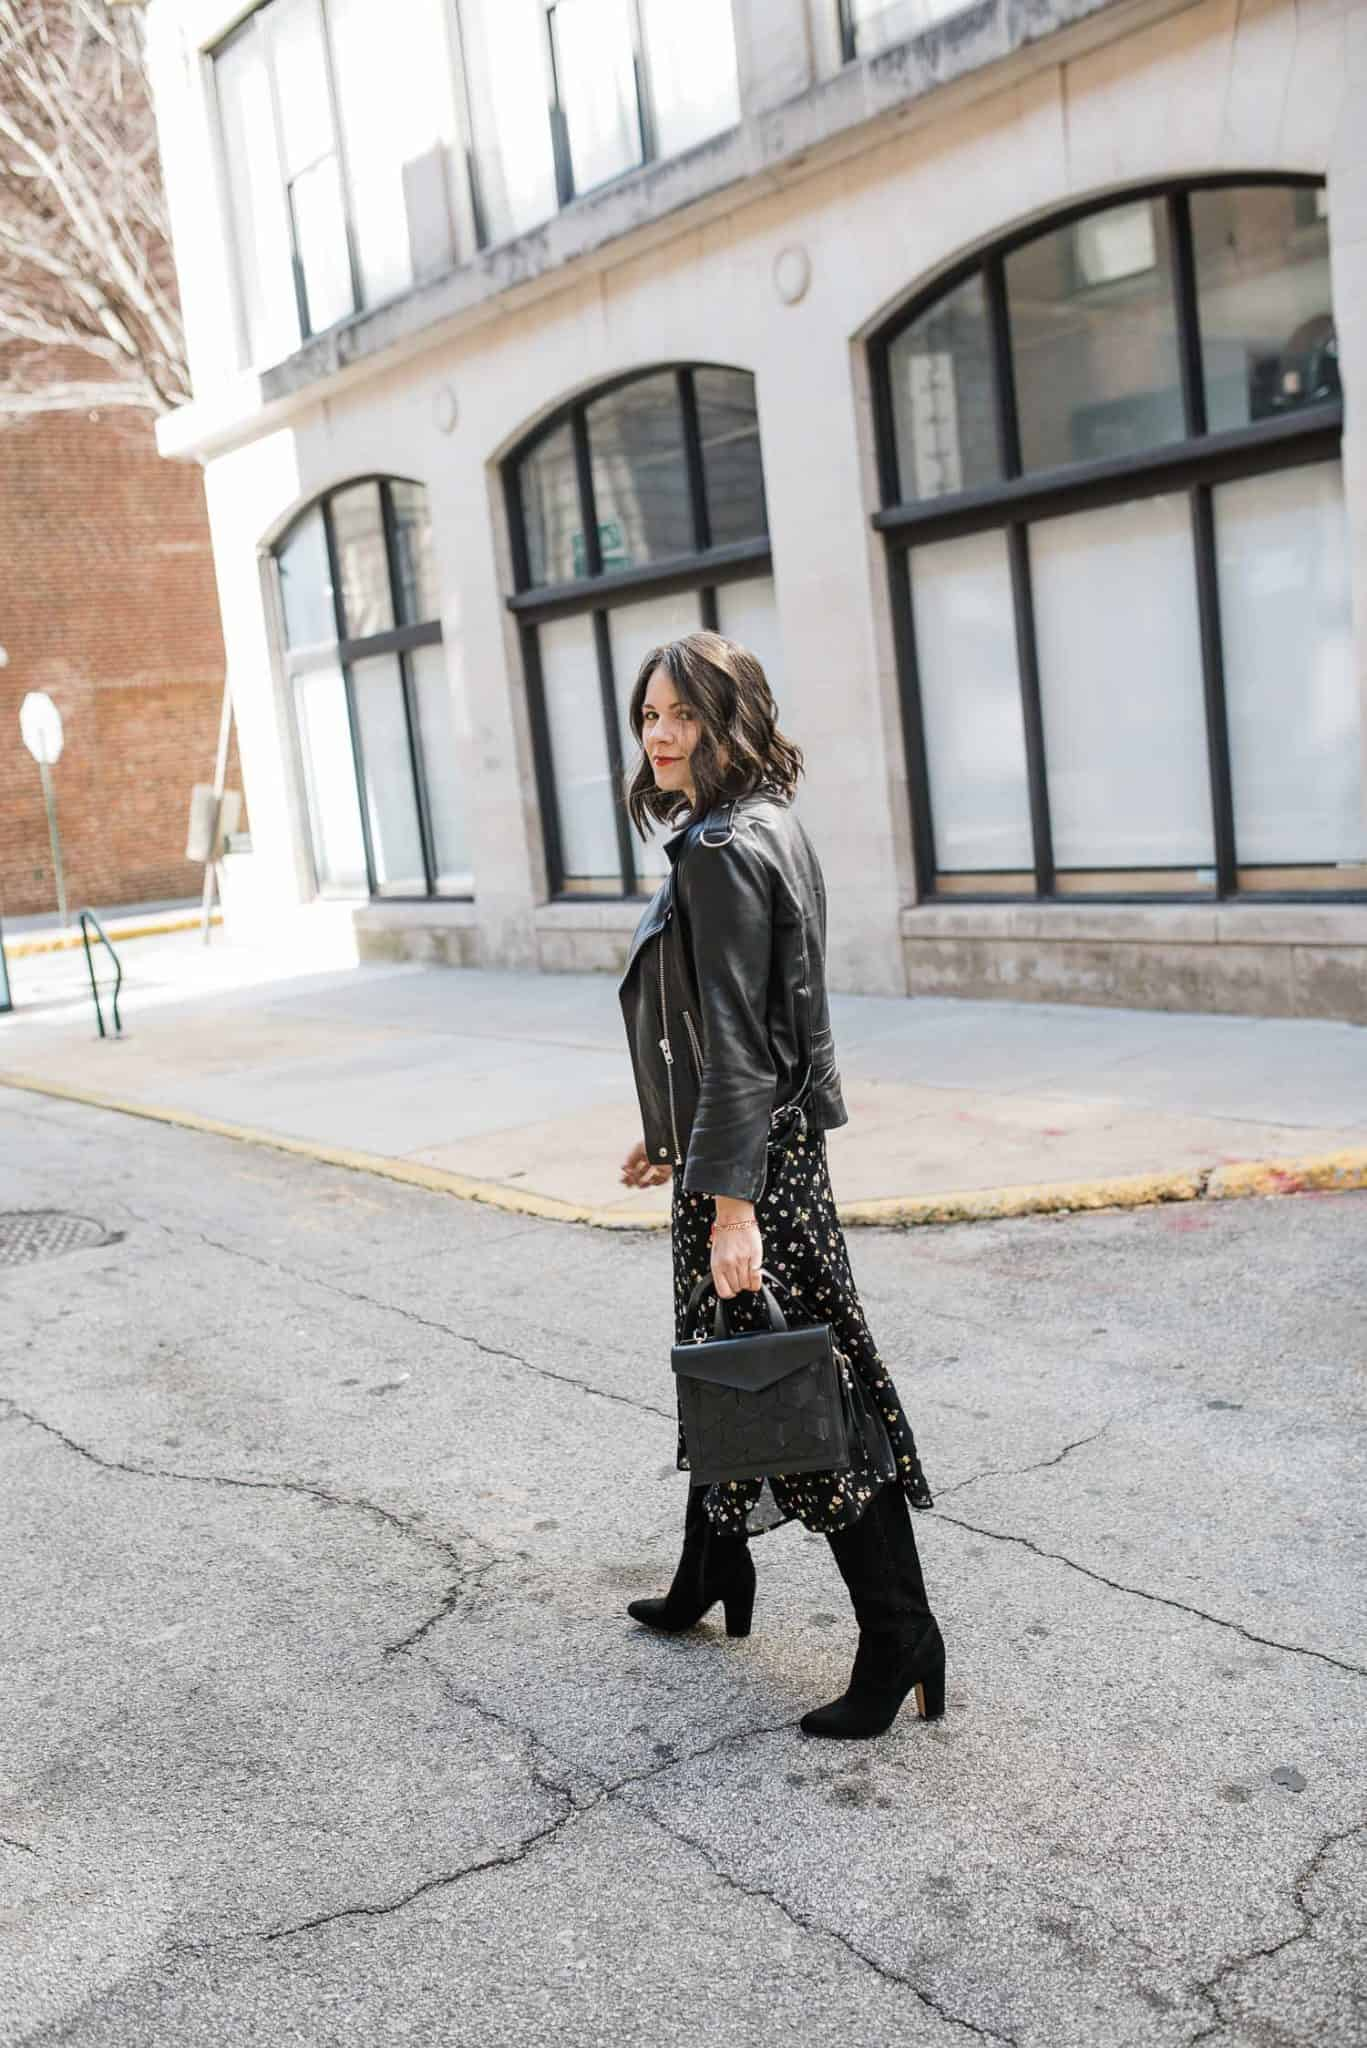 Leather & Suede Jackets With Fall Dresses